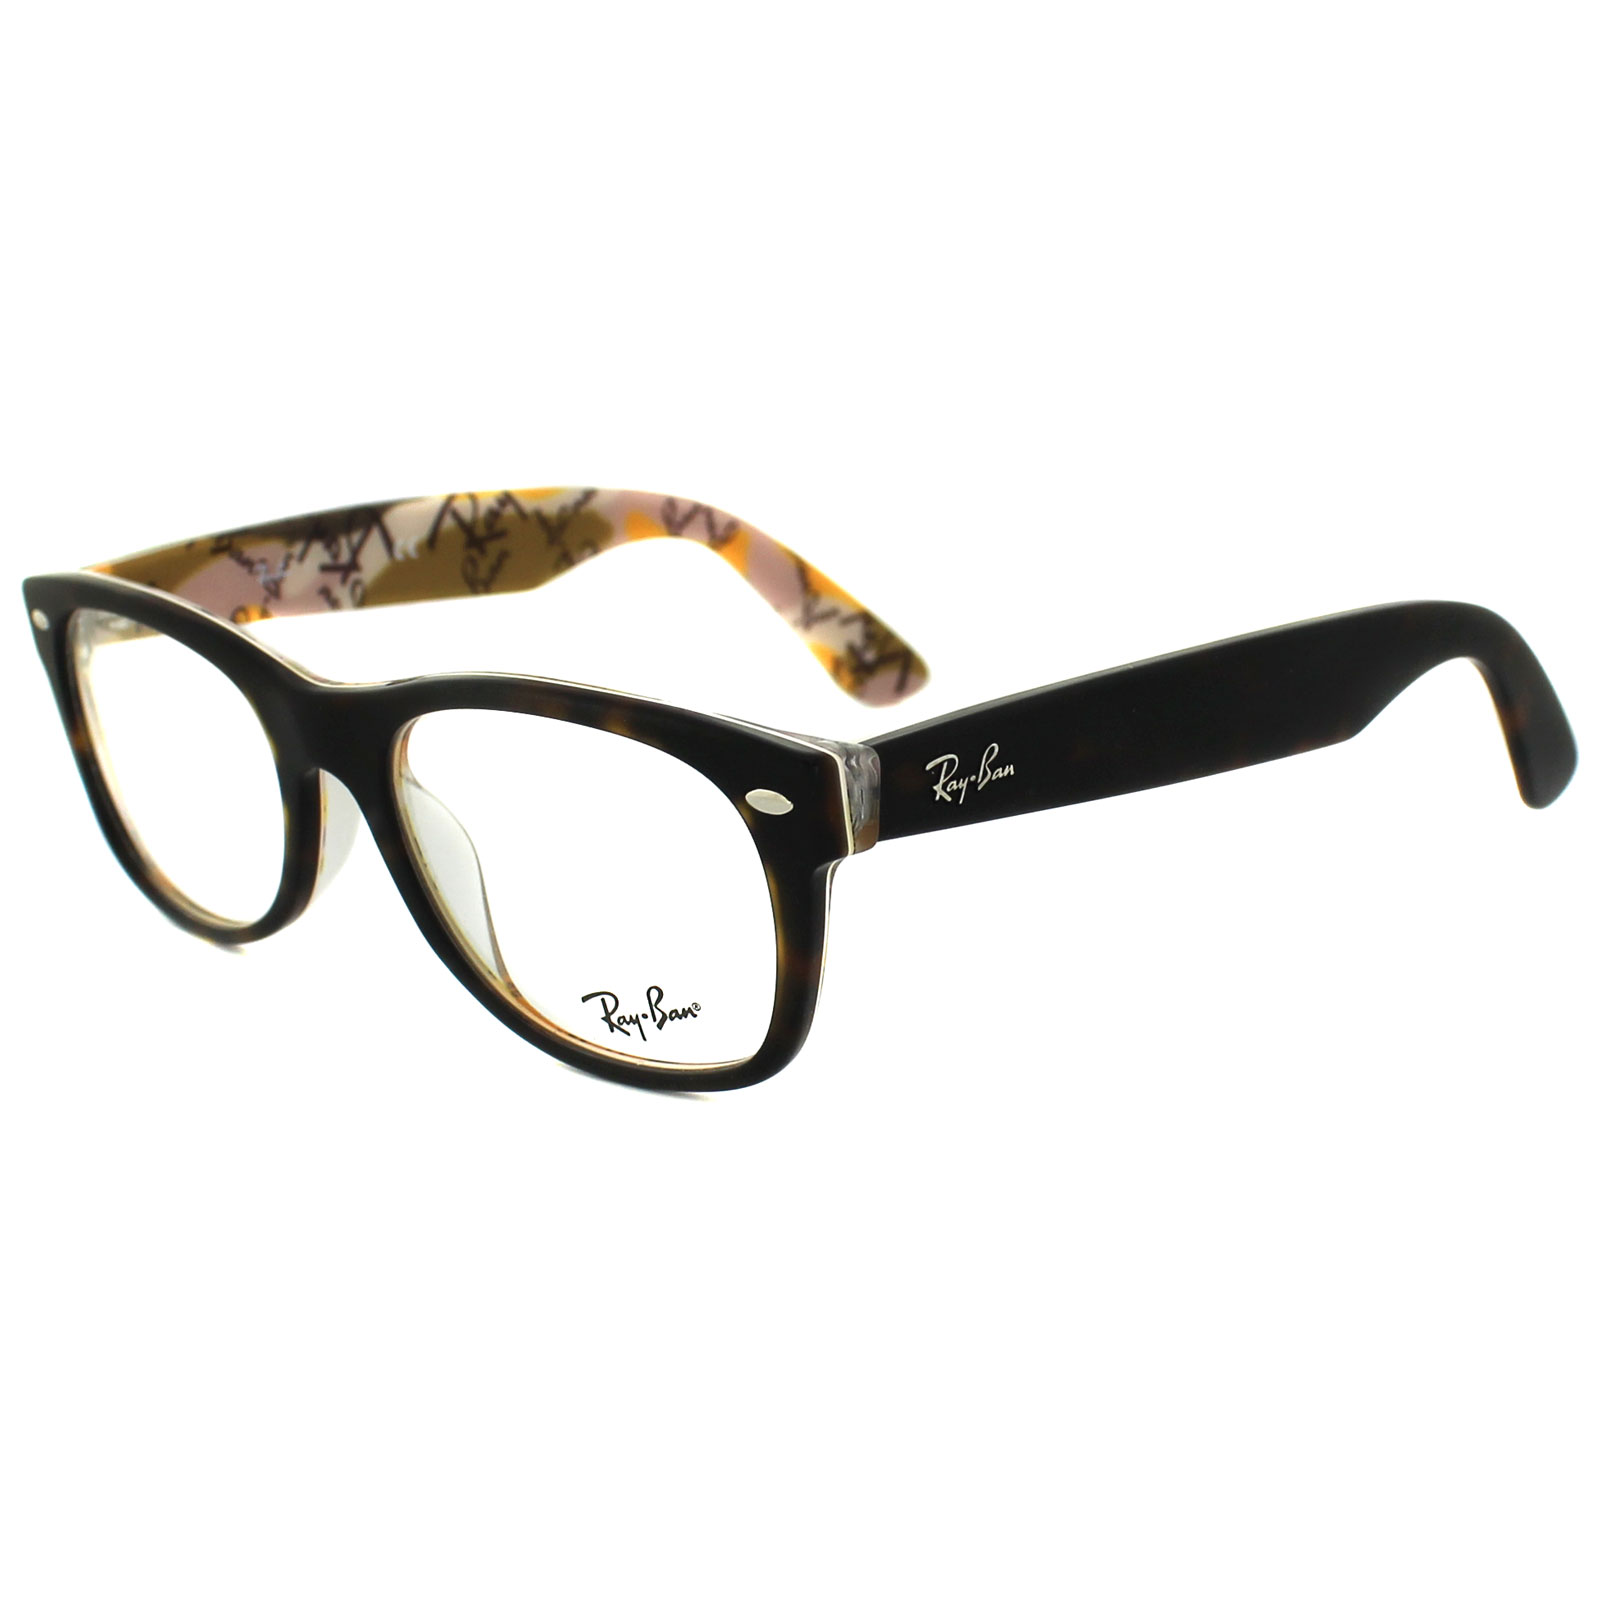 sentinel ray ban glasses frames 5184 5409 top tortoise on texture camouflage 52mm